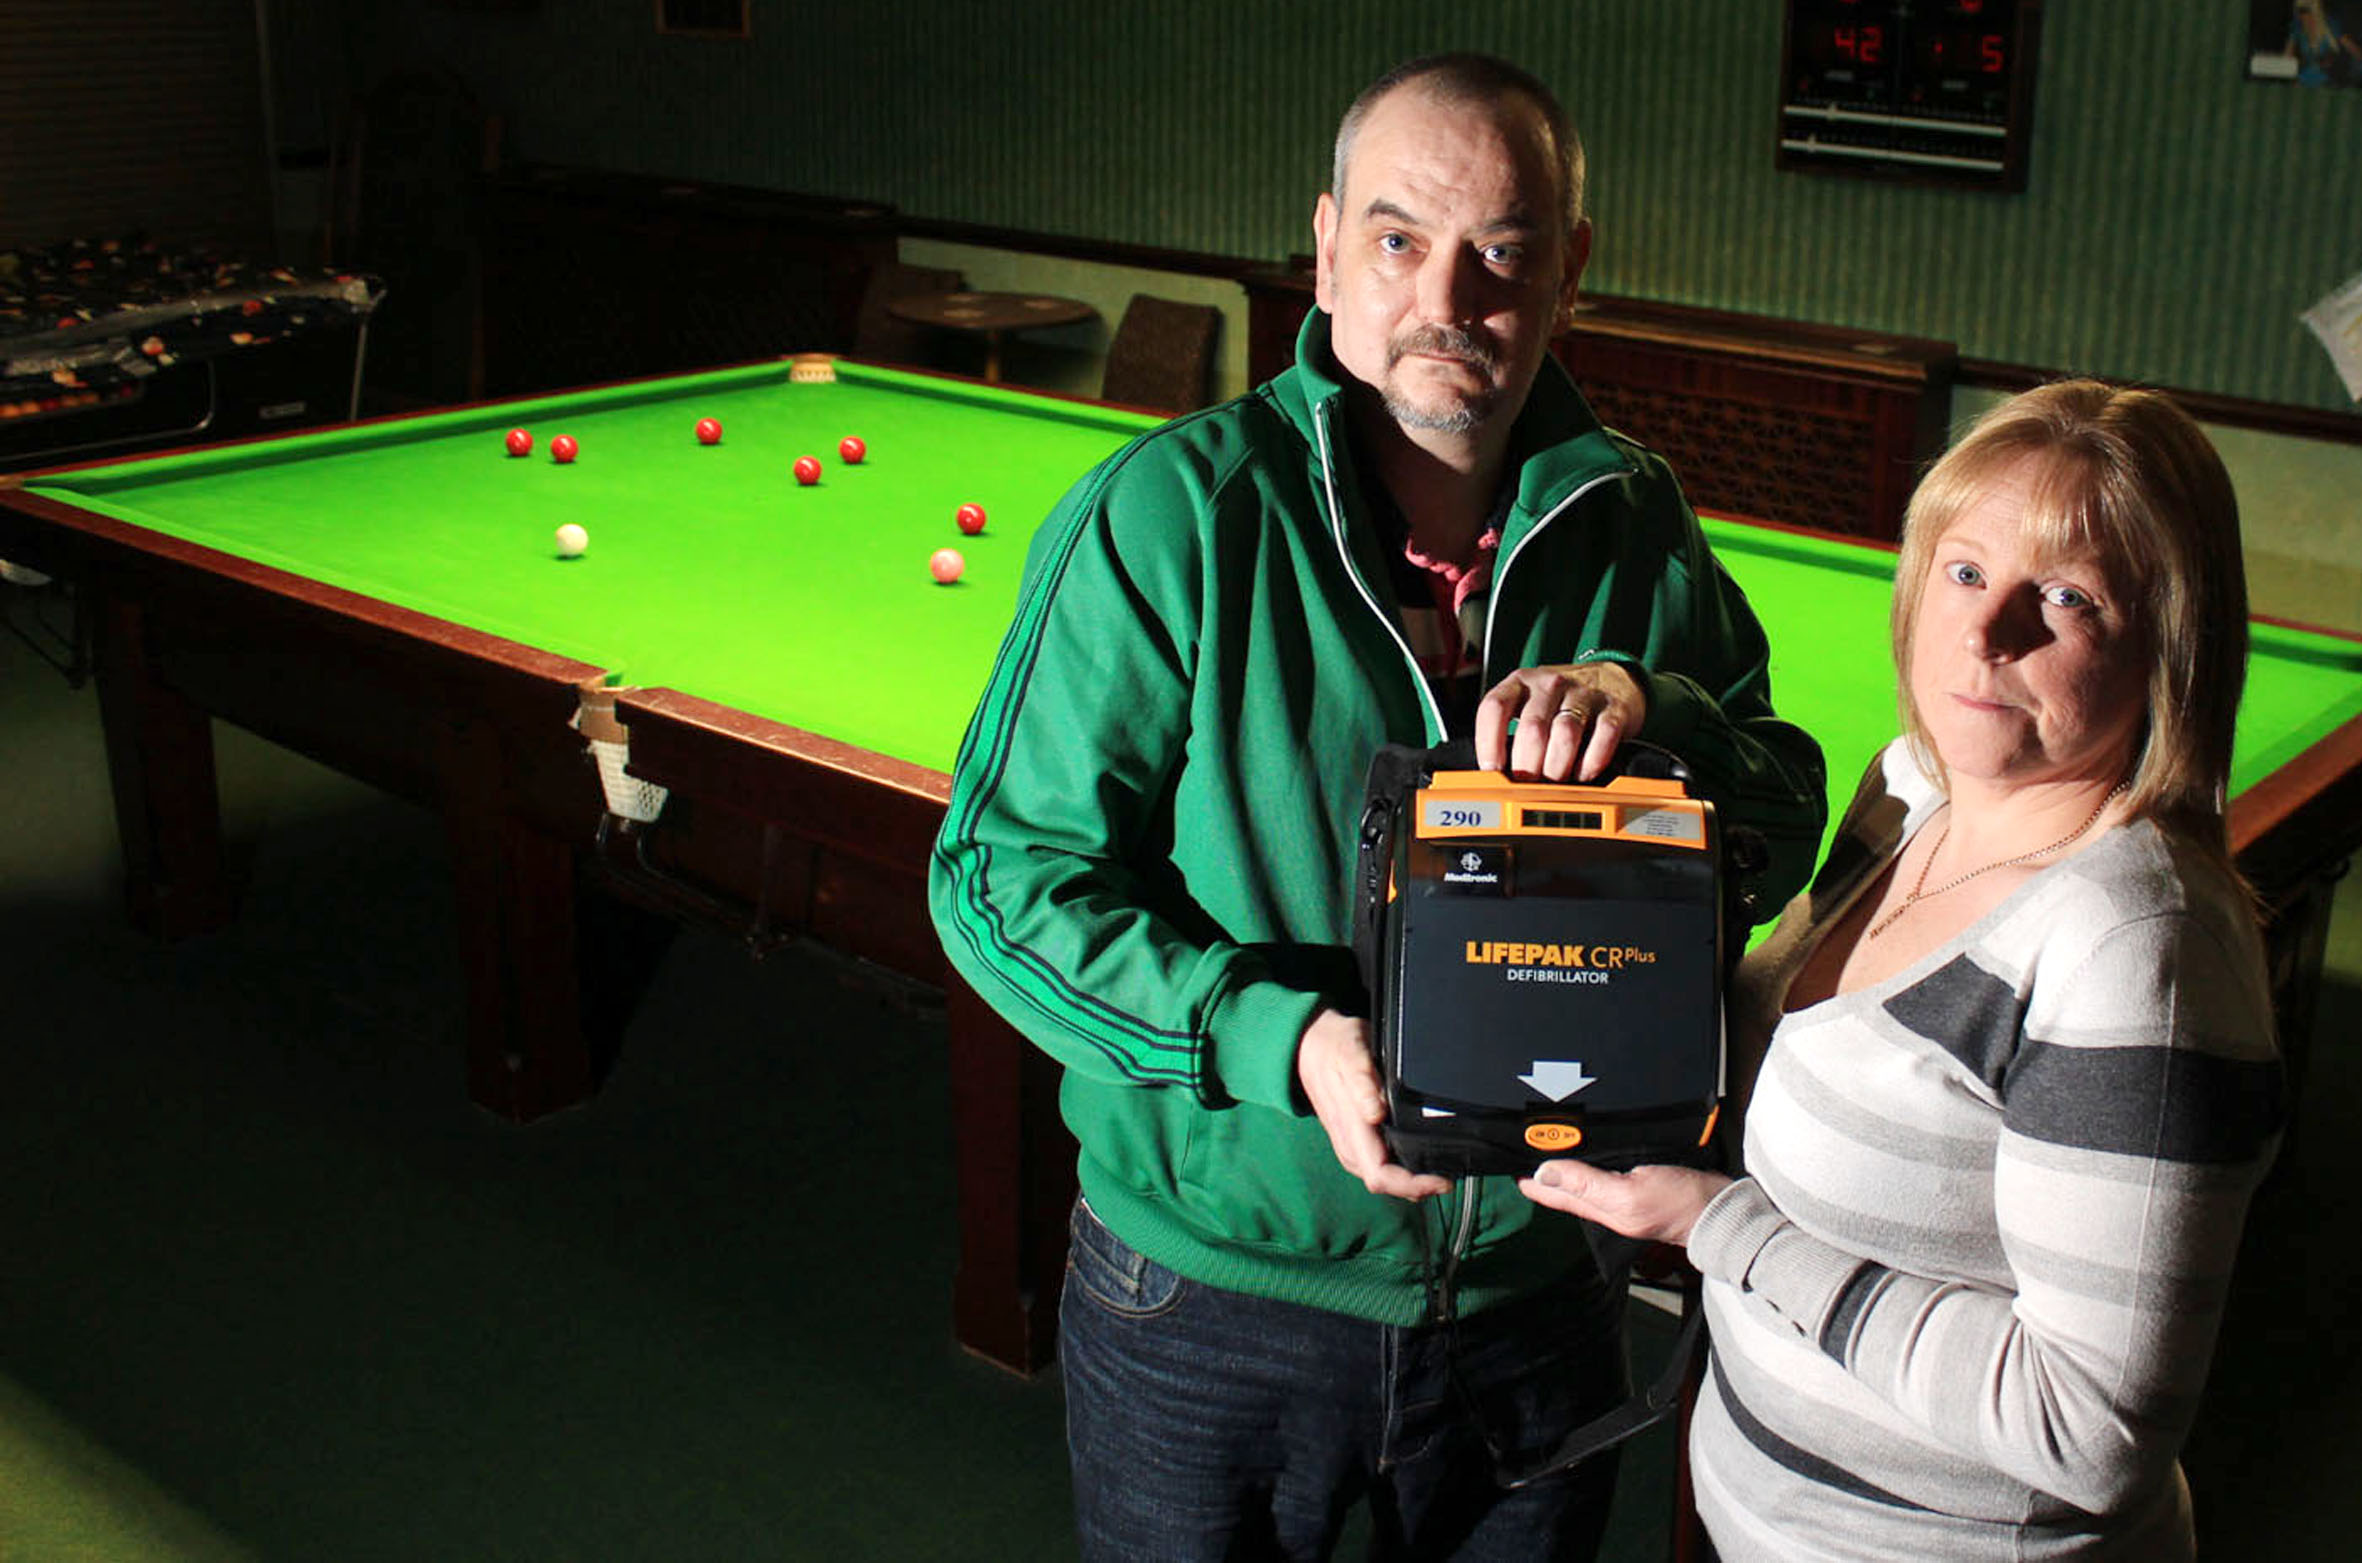 Club staff and customers save snooker player's life after he collapses during match